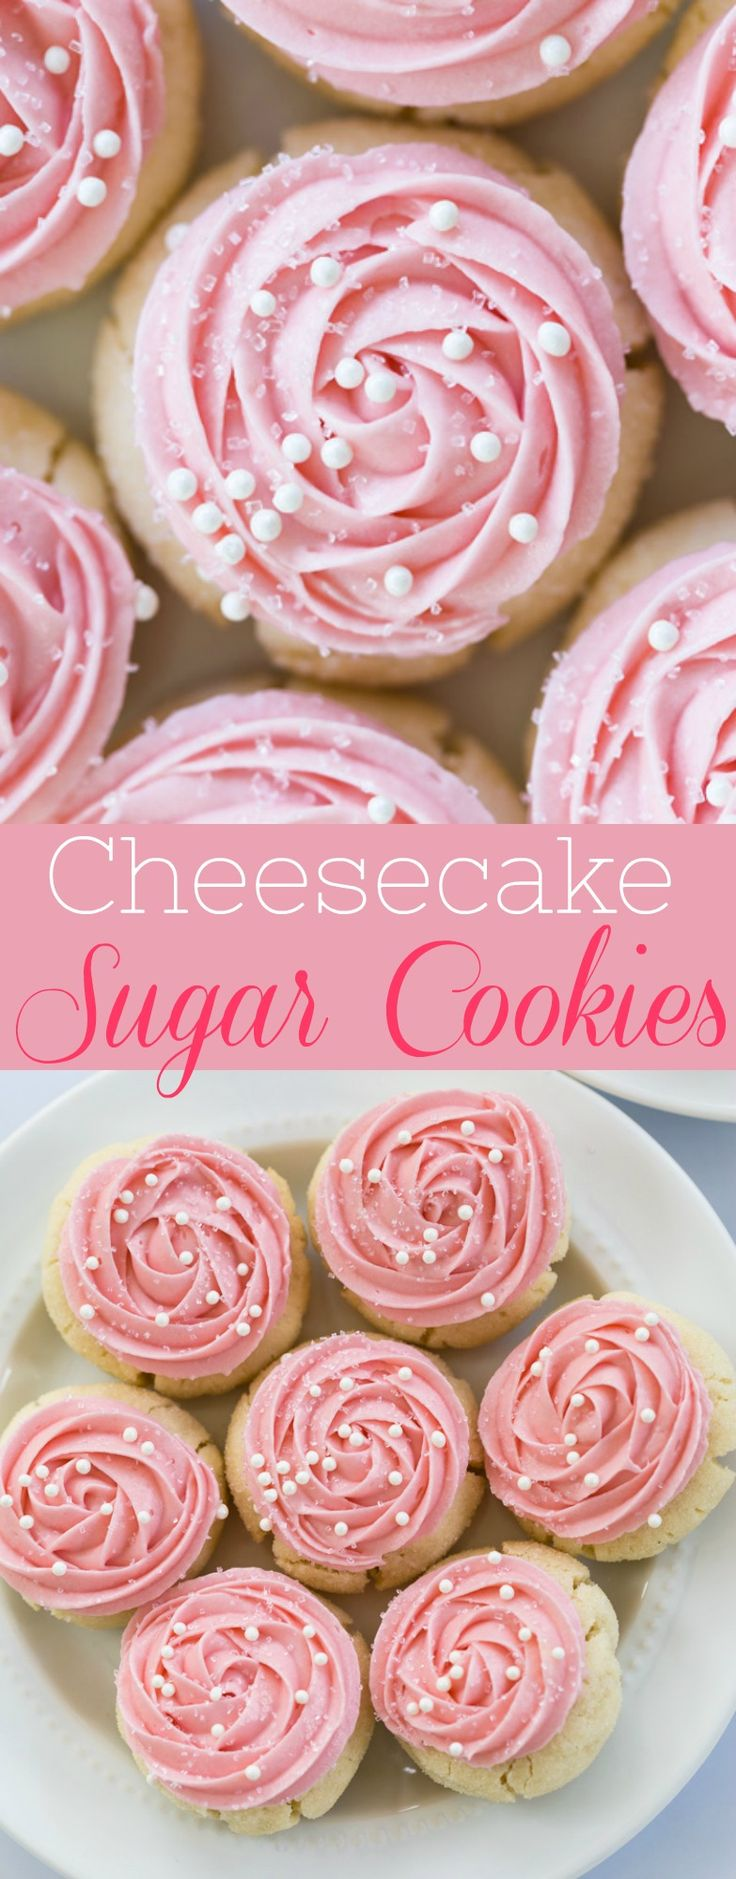 Sweet, chewy sugar cookies topped with a smooth and creamy, cheesecake frosting with an easy floral design.